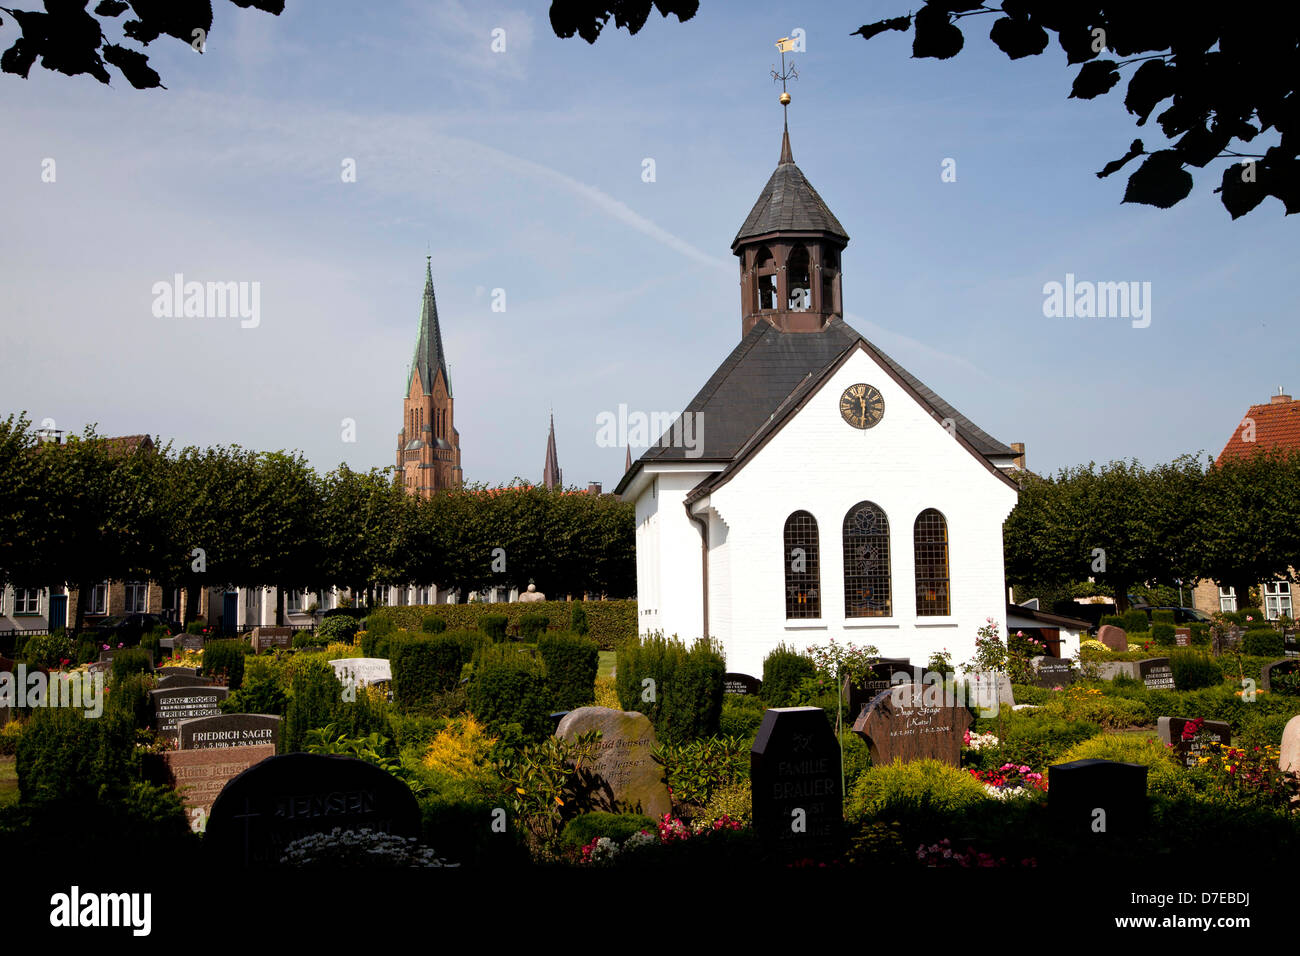 Holm Chapel, cemetary and Schleswig Cathedral, Schleswig, Schleswig-Holstein, Germany, Europe - Stock Image